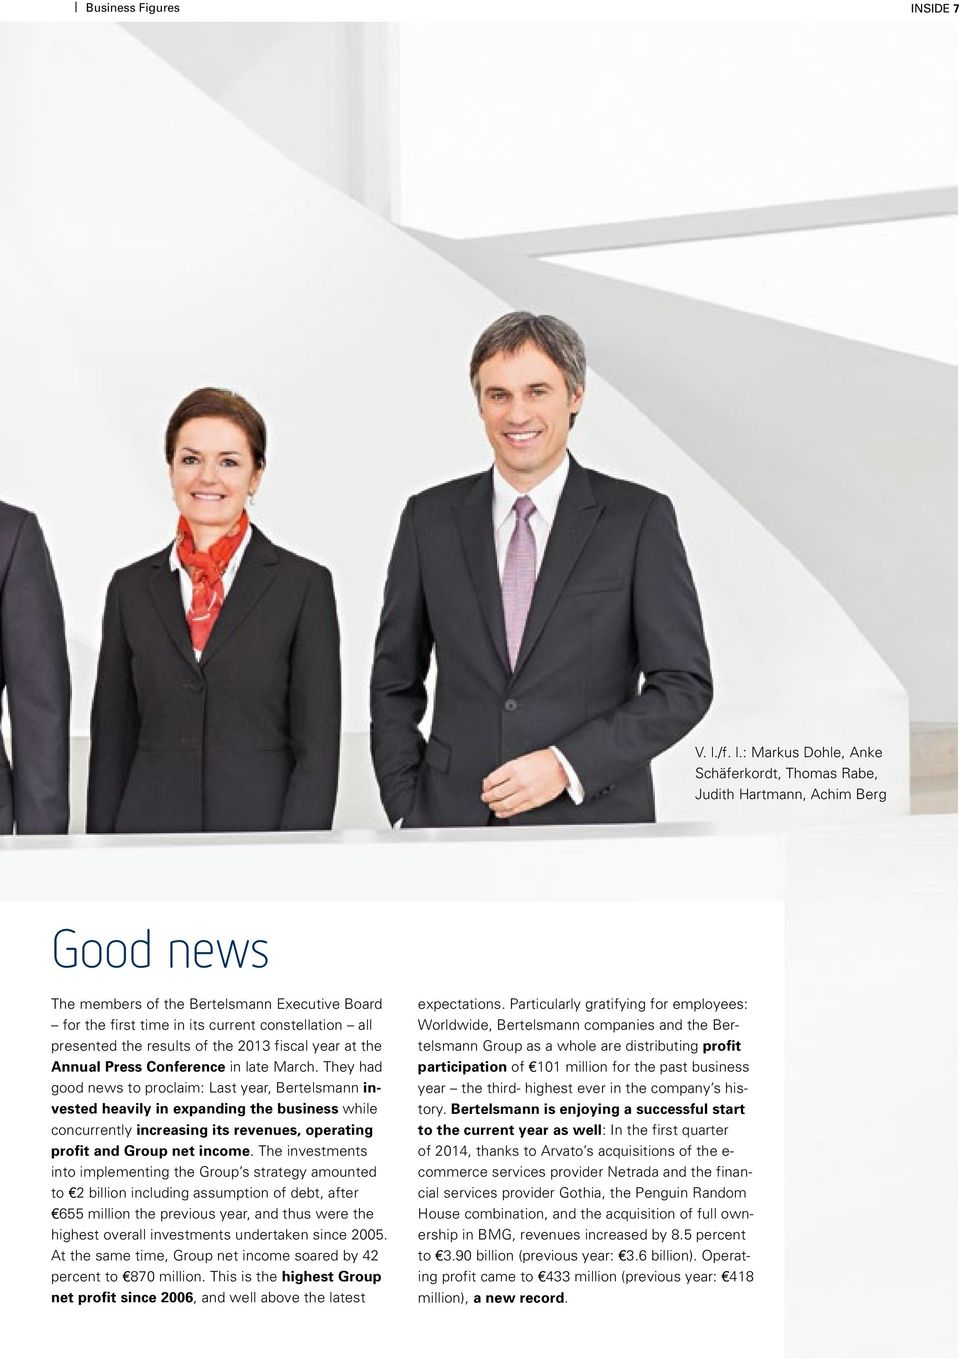 : Markus Dohle, Anke Schäferkordt, Thomas Rabe, Judith Hartmann, Achim Berg Good news The members of the Bertelsmann Executive Board for the first time in its current constellation all presented the